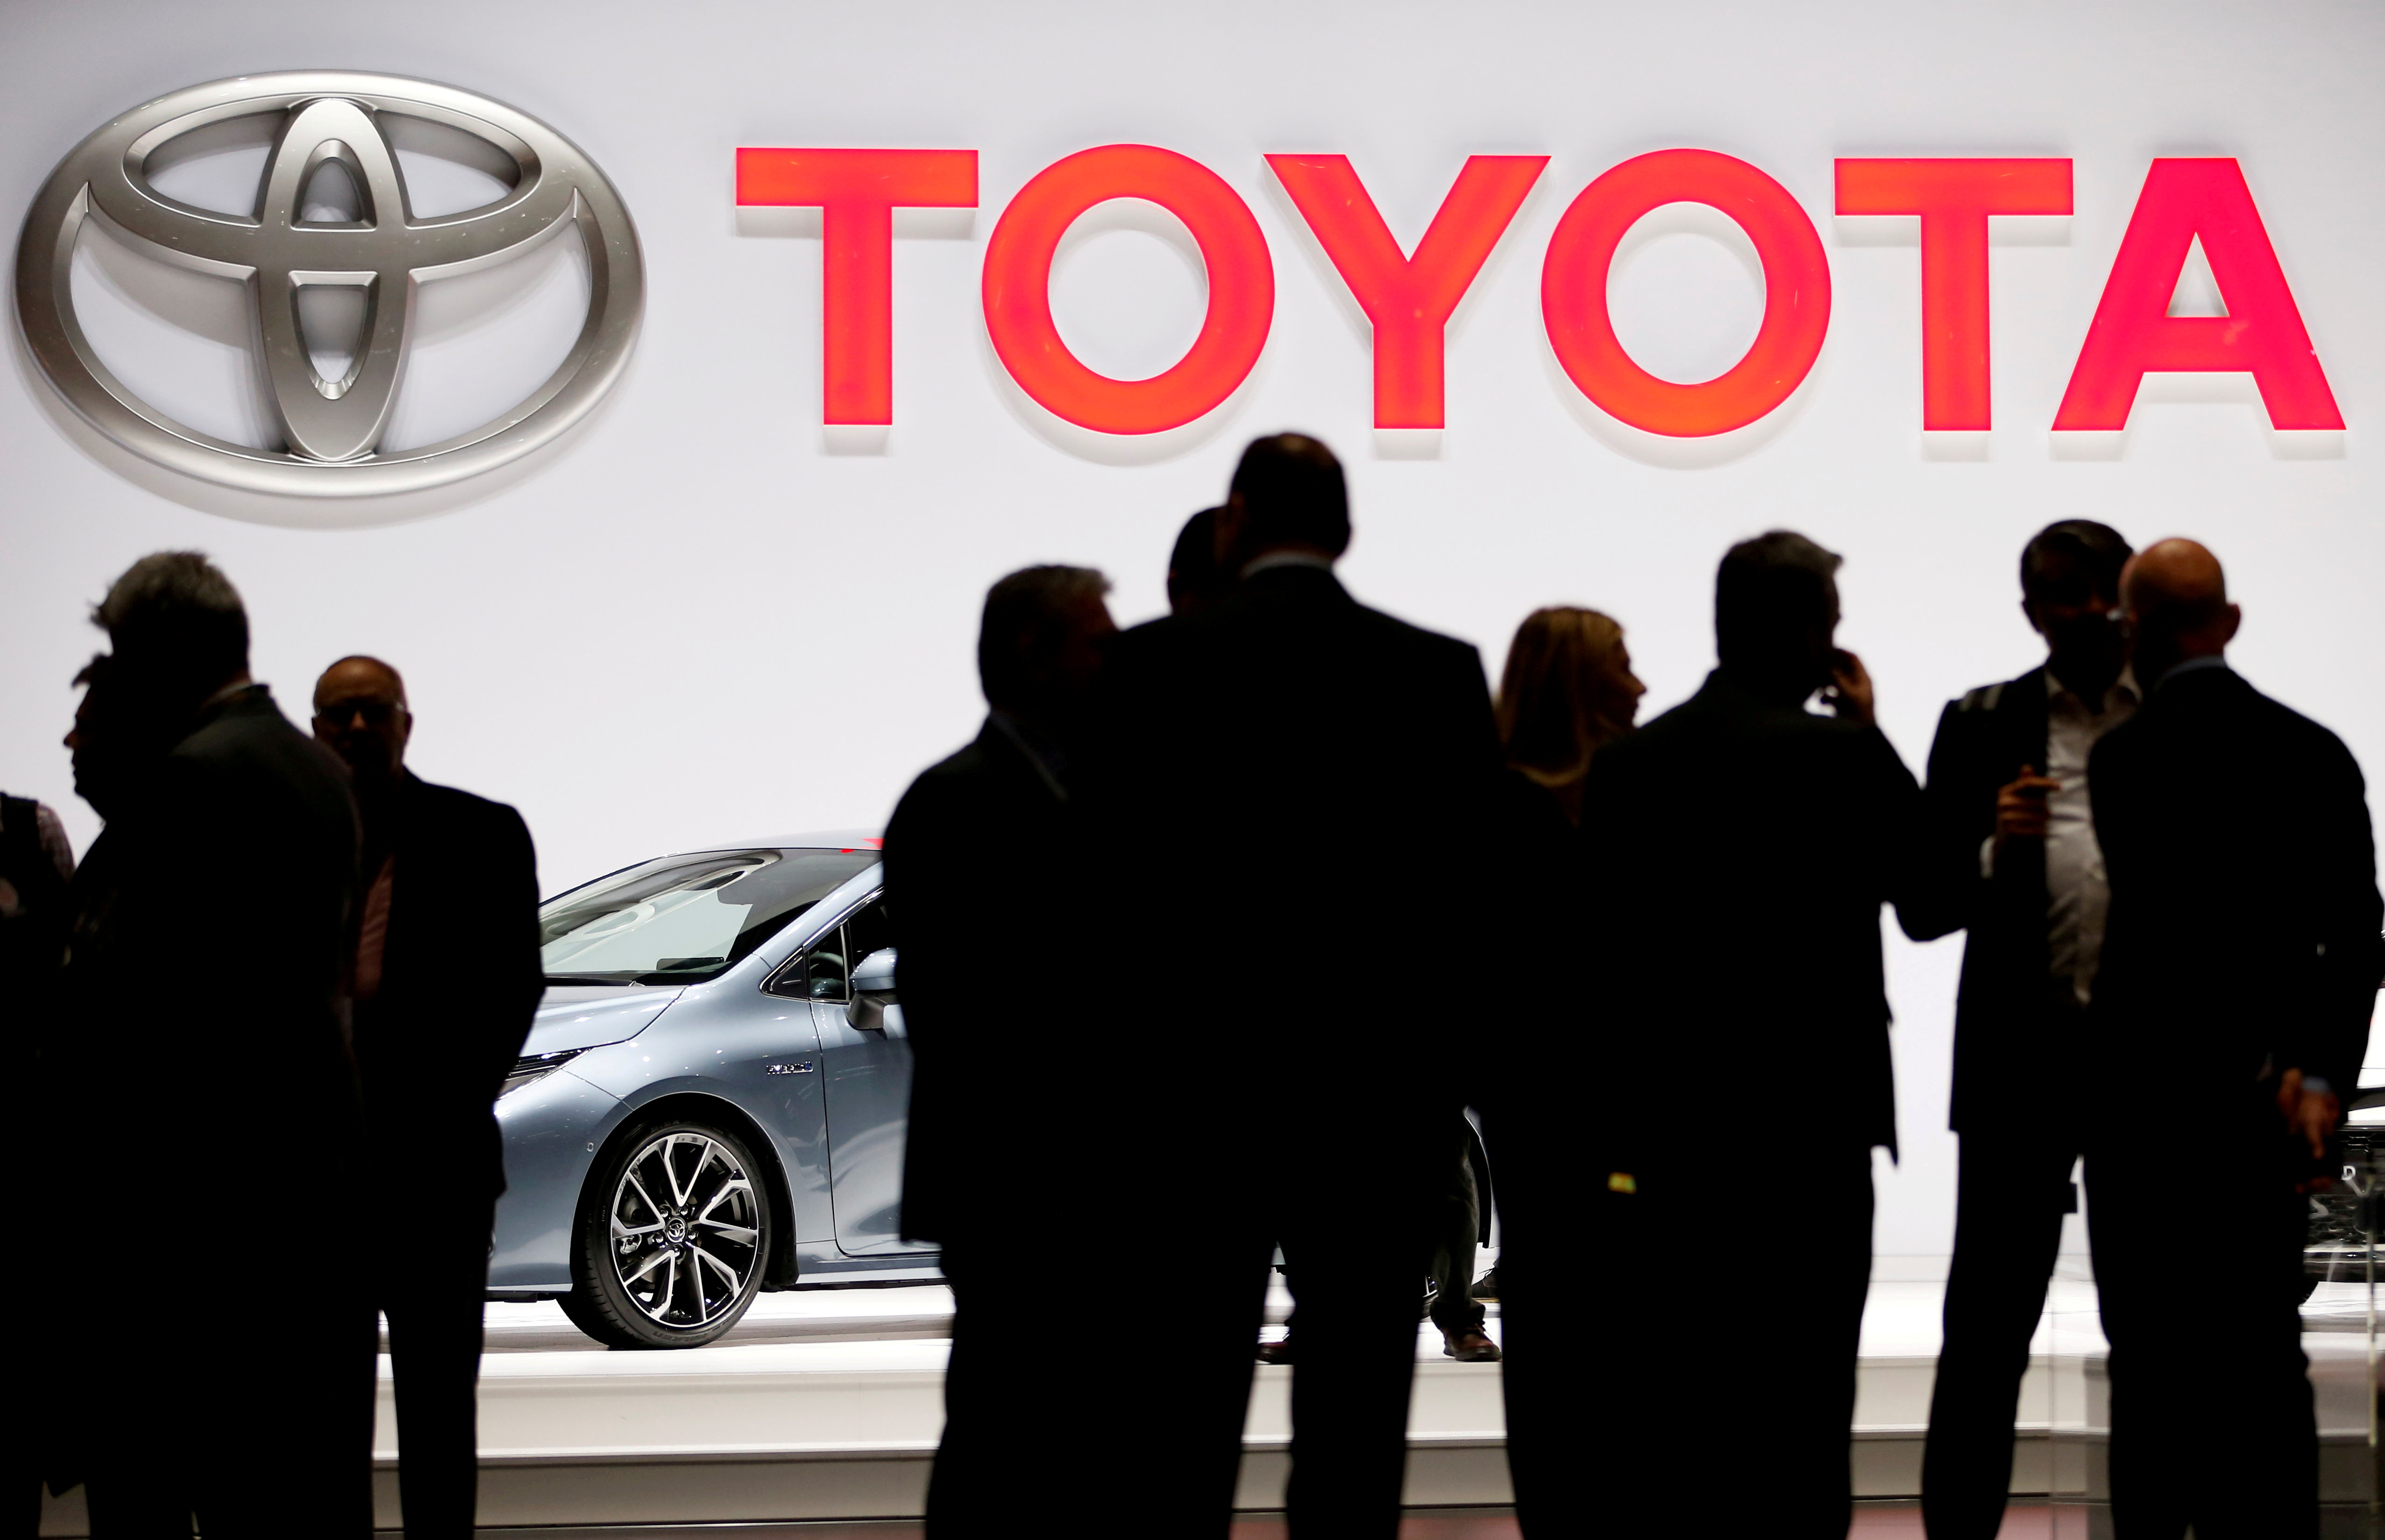 A Toyota logo is displayed at the 89th Geneva International Motor Show in Geneva, Switzerland March 5, 2019. REUTERS/Pierre Albouy/File Photo